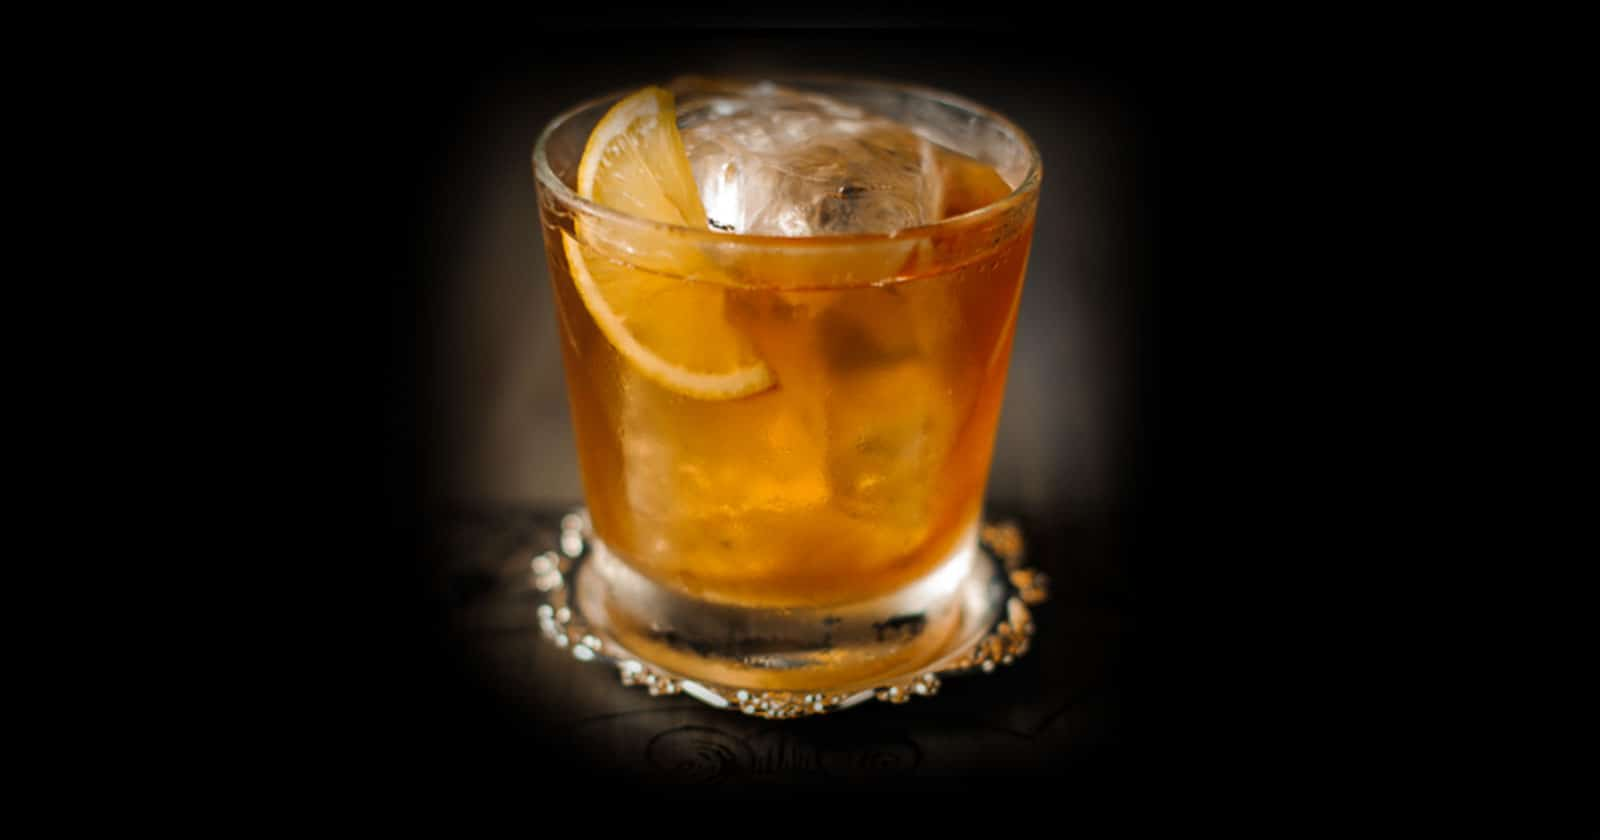 franks-old-fashioned